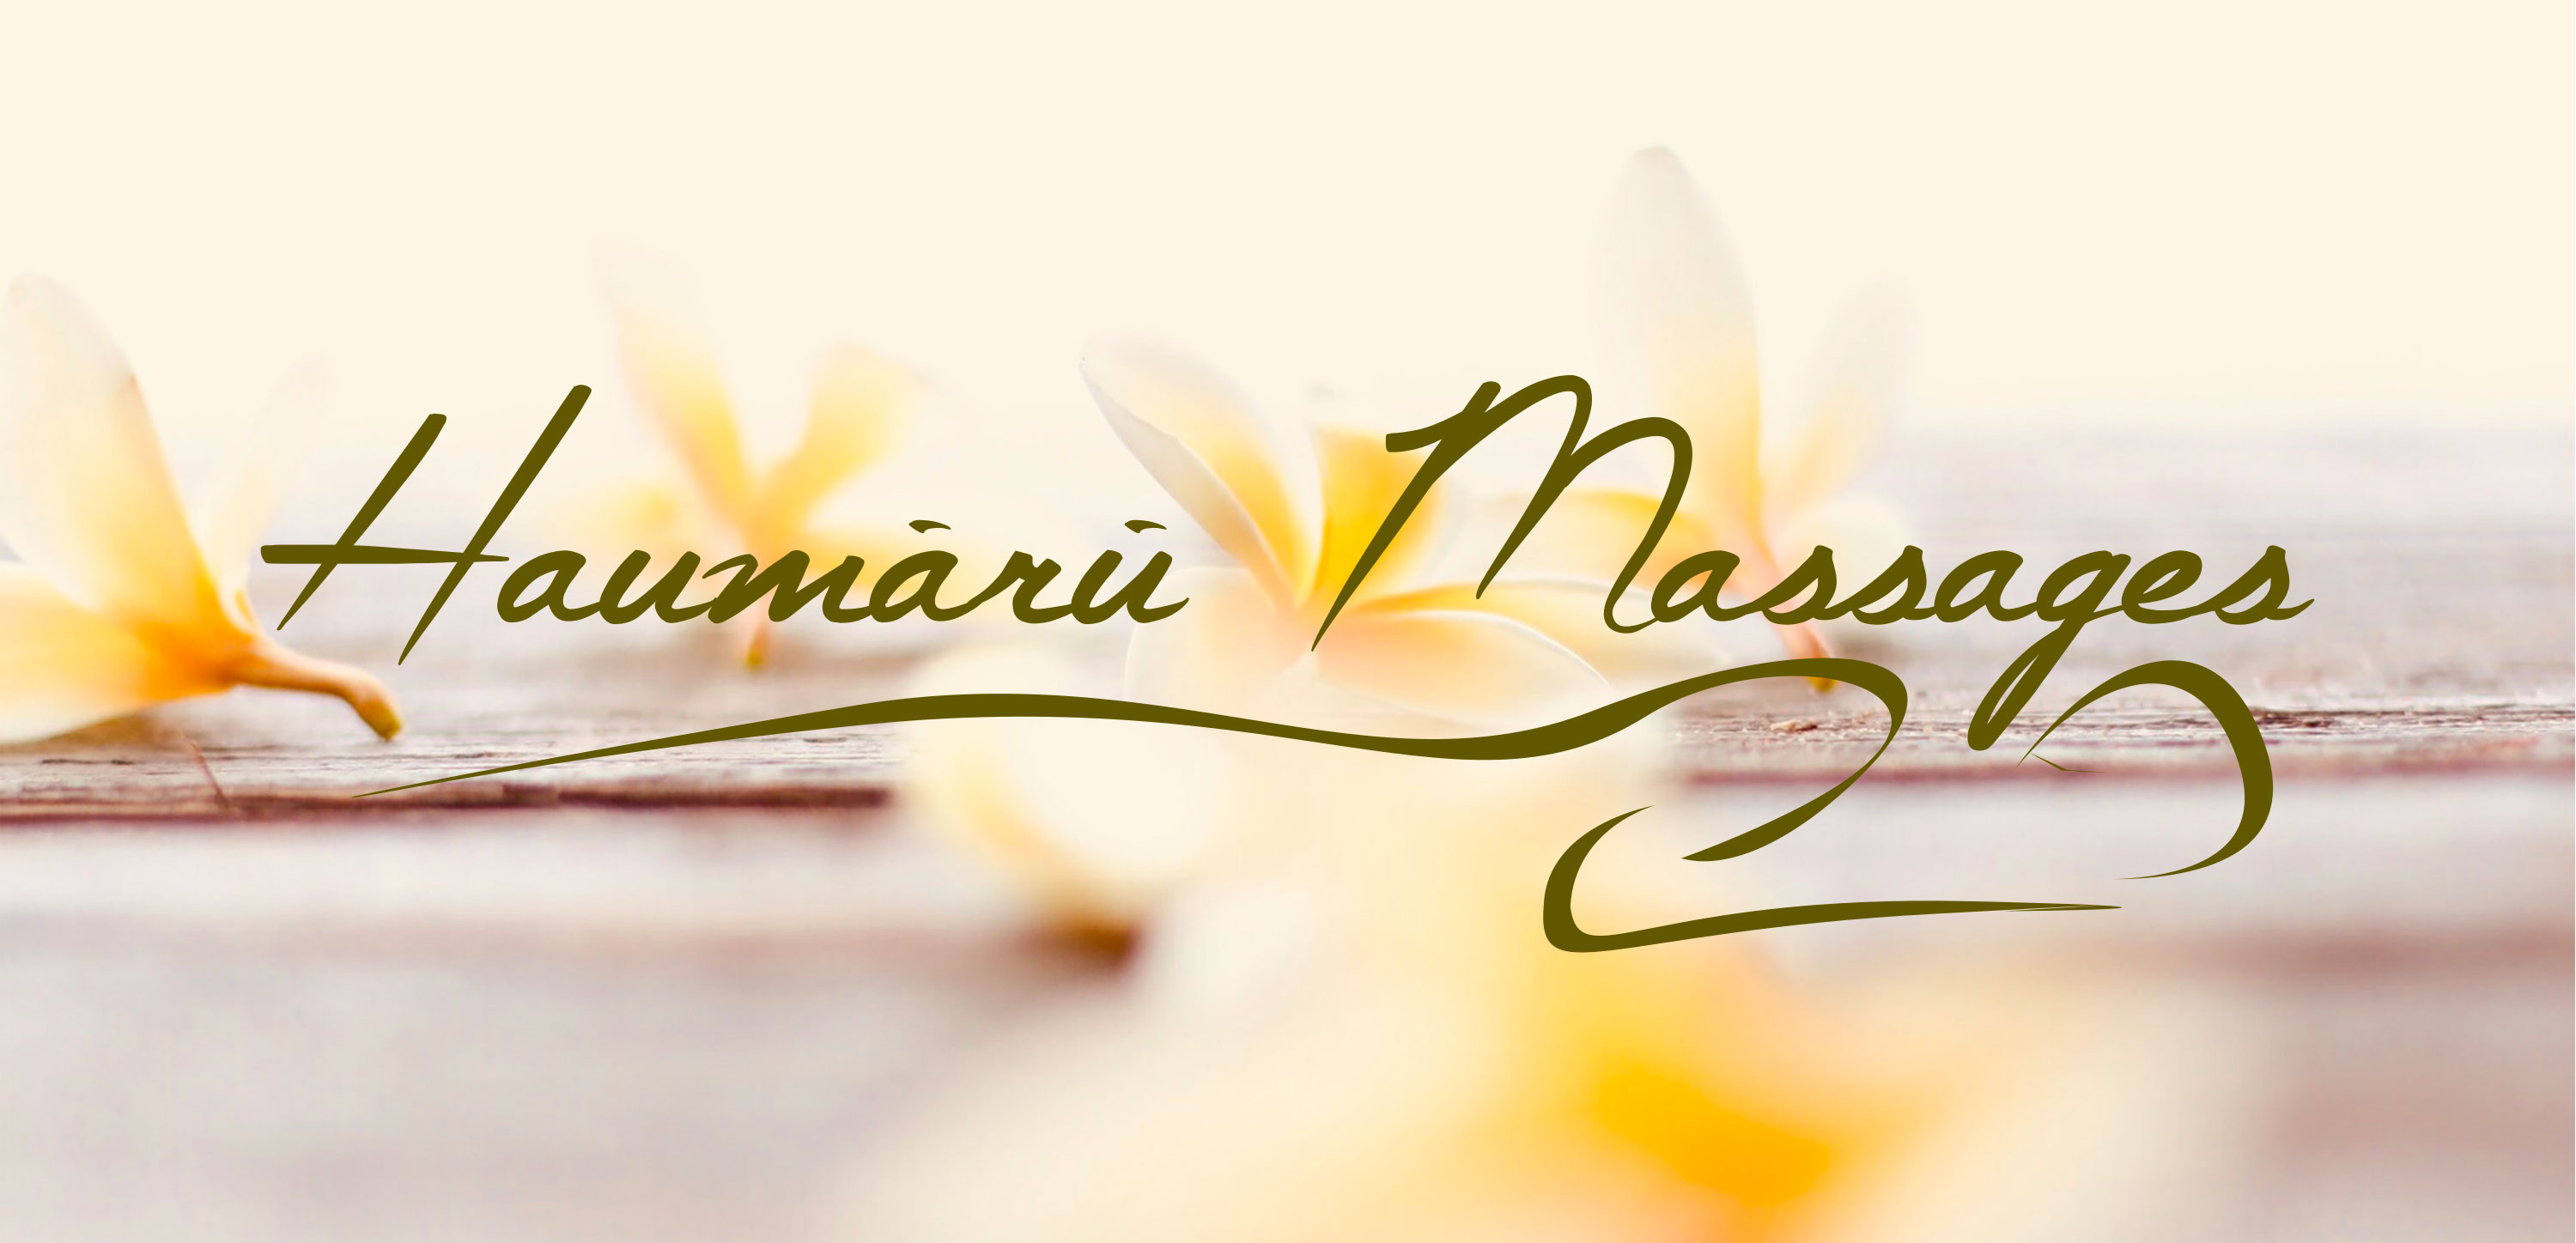 https://tahititourisme.de/wp-content/uploads/2019/09/HAUMARU-MASSAGE-1140x550.jpg